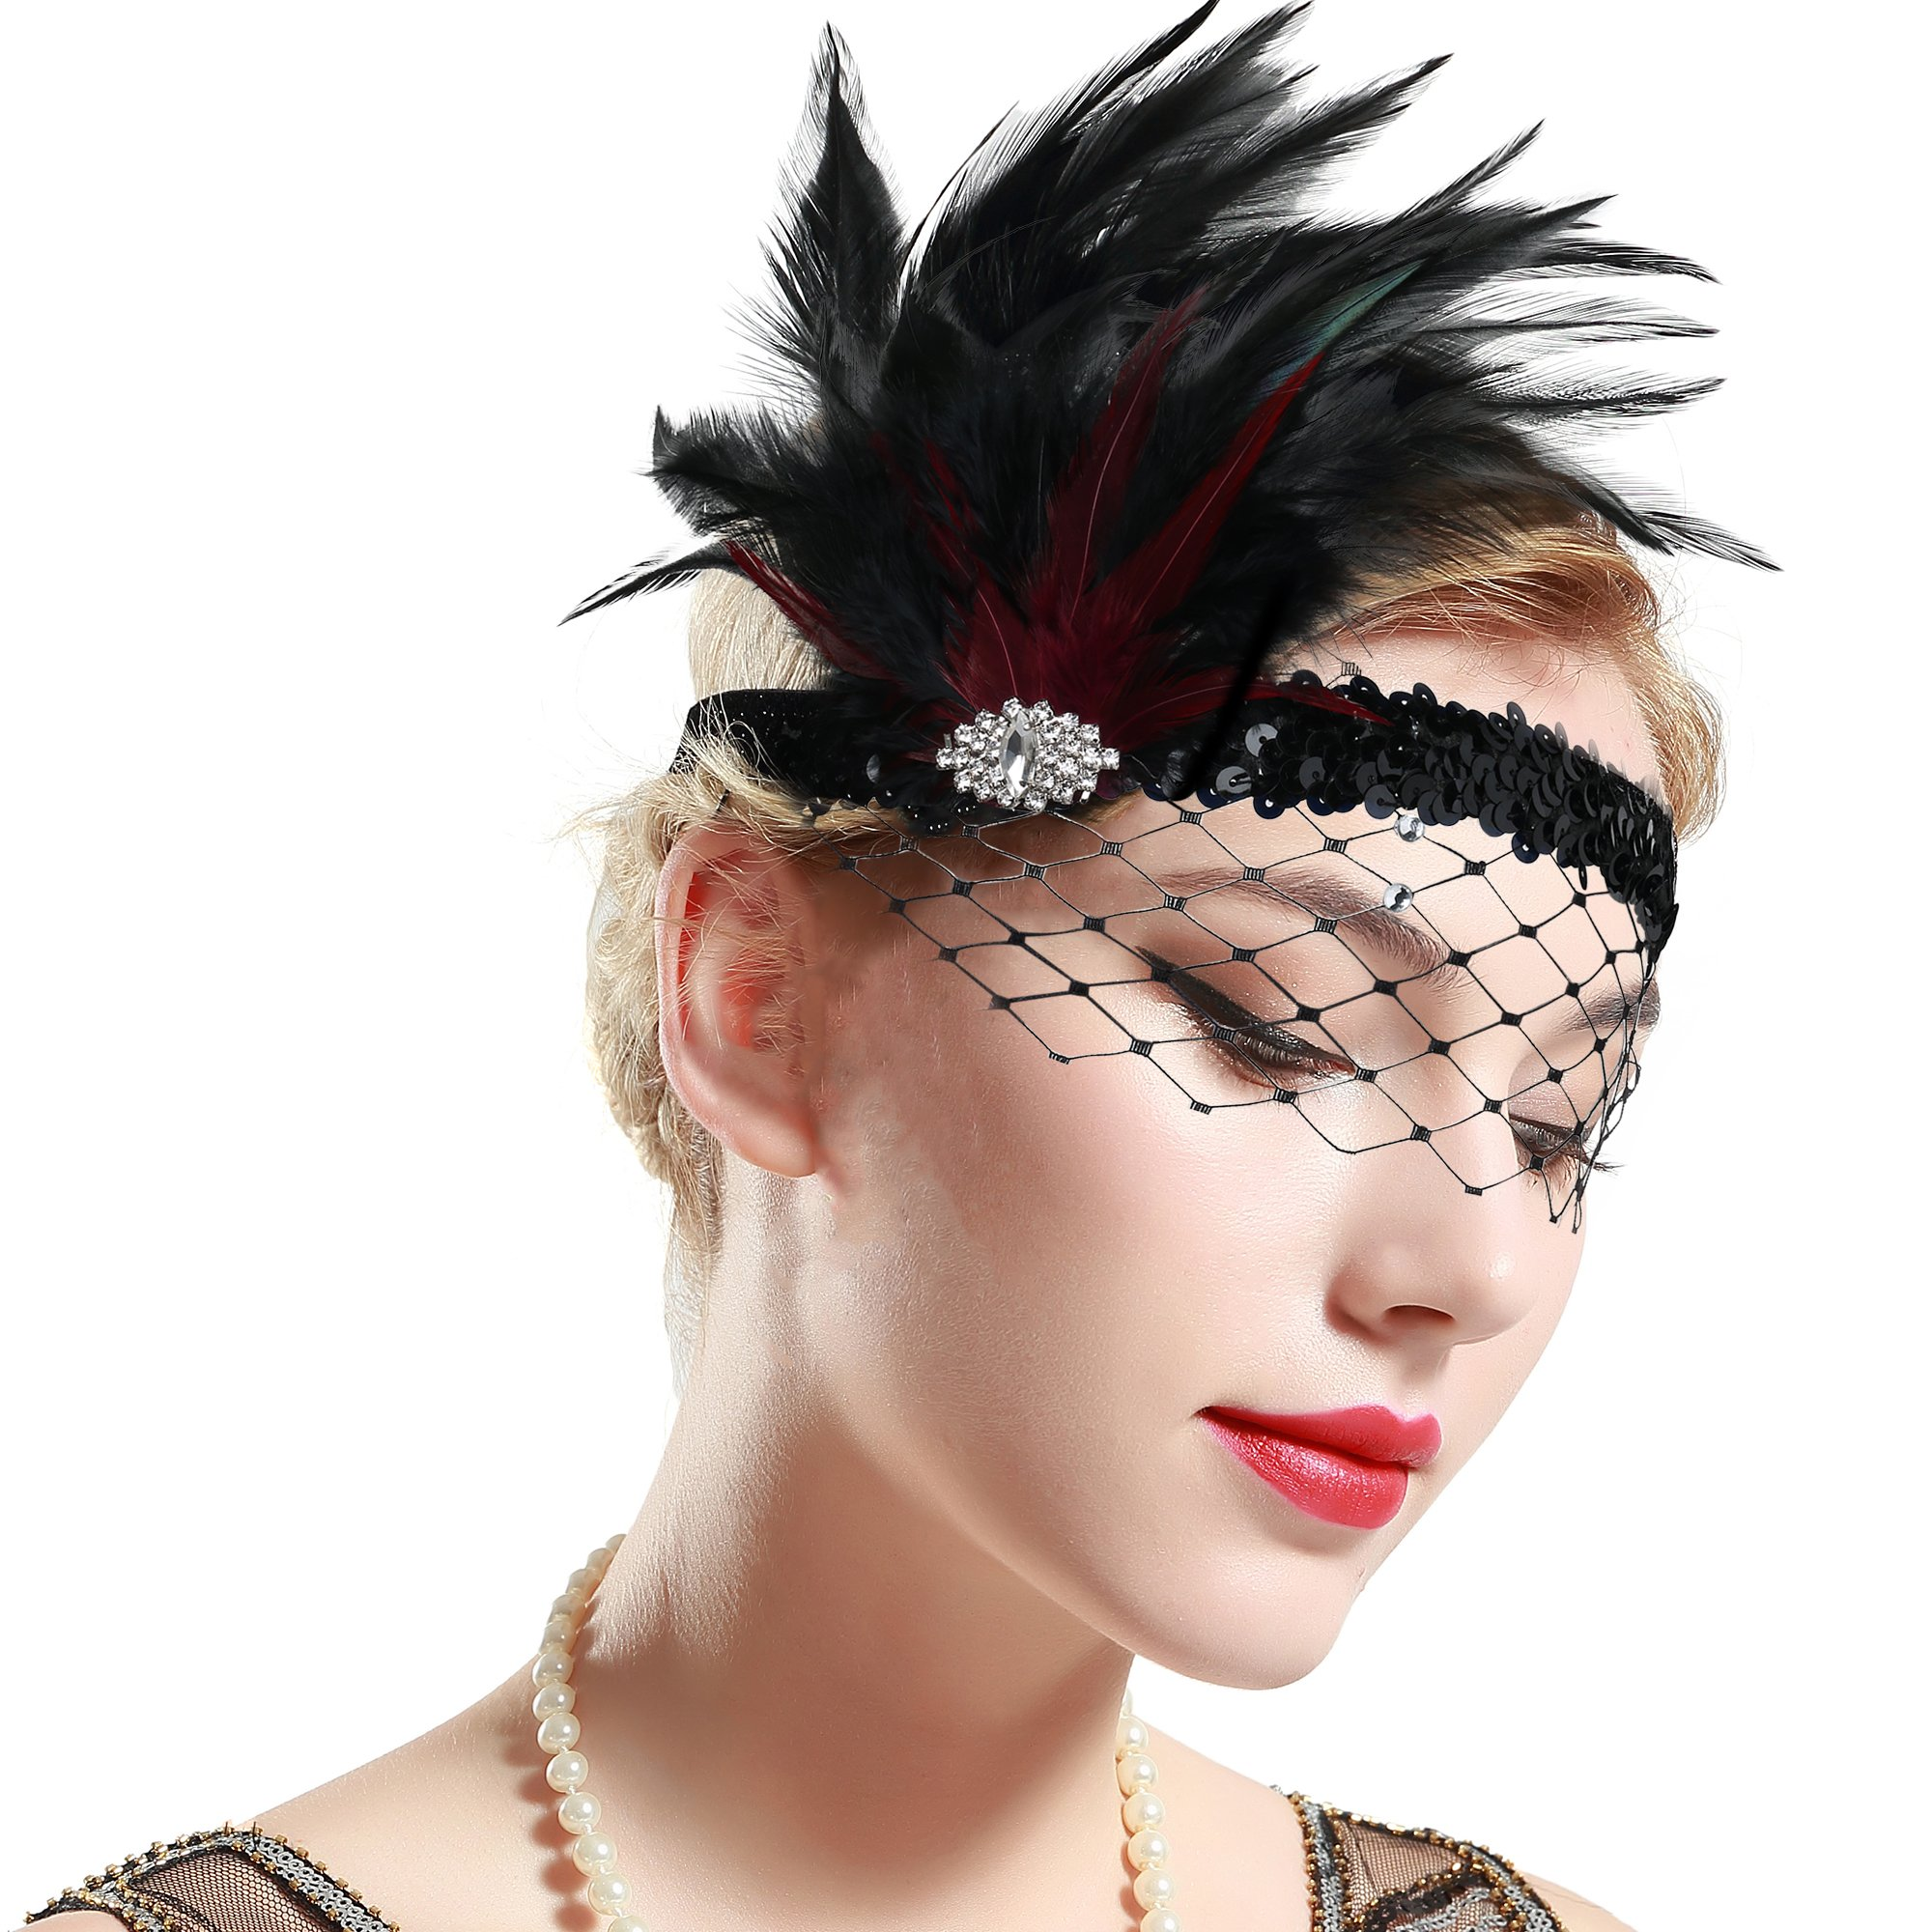 BABEYOND 1920s Flapper Headband Roaring 20s Feather Headpiece Crystal Great Gatsby Headband with Net 1920s Flapper Accessories